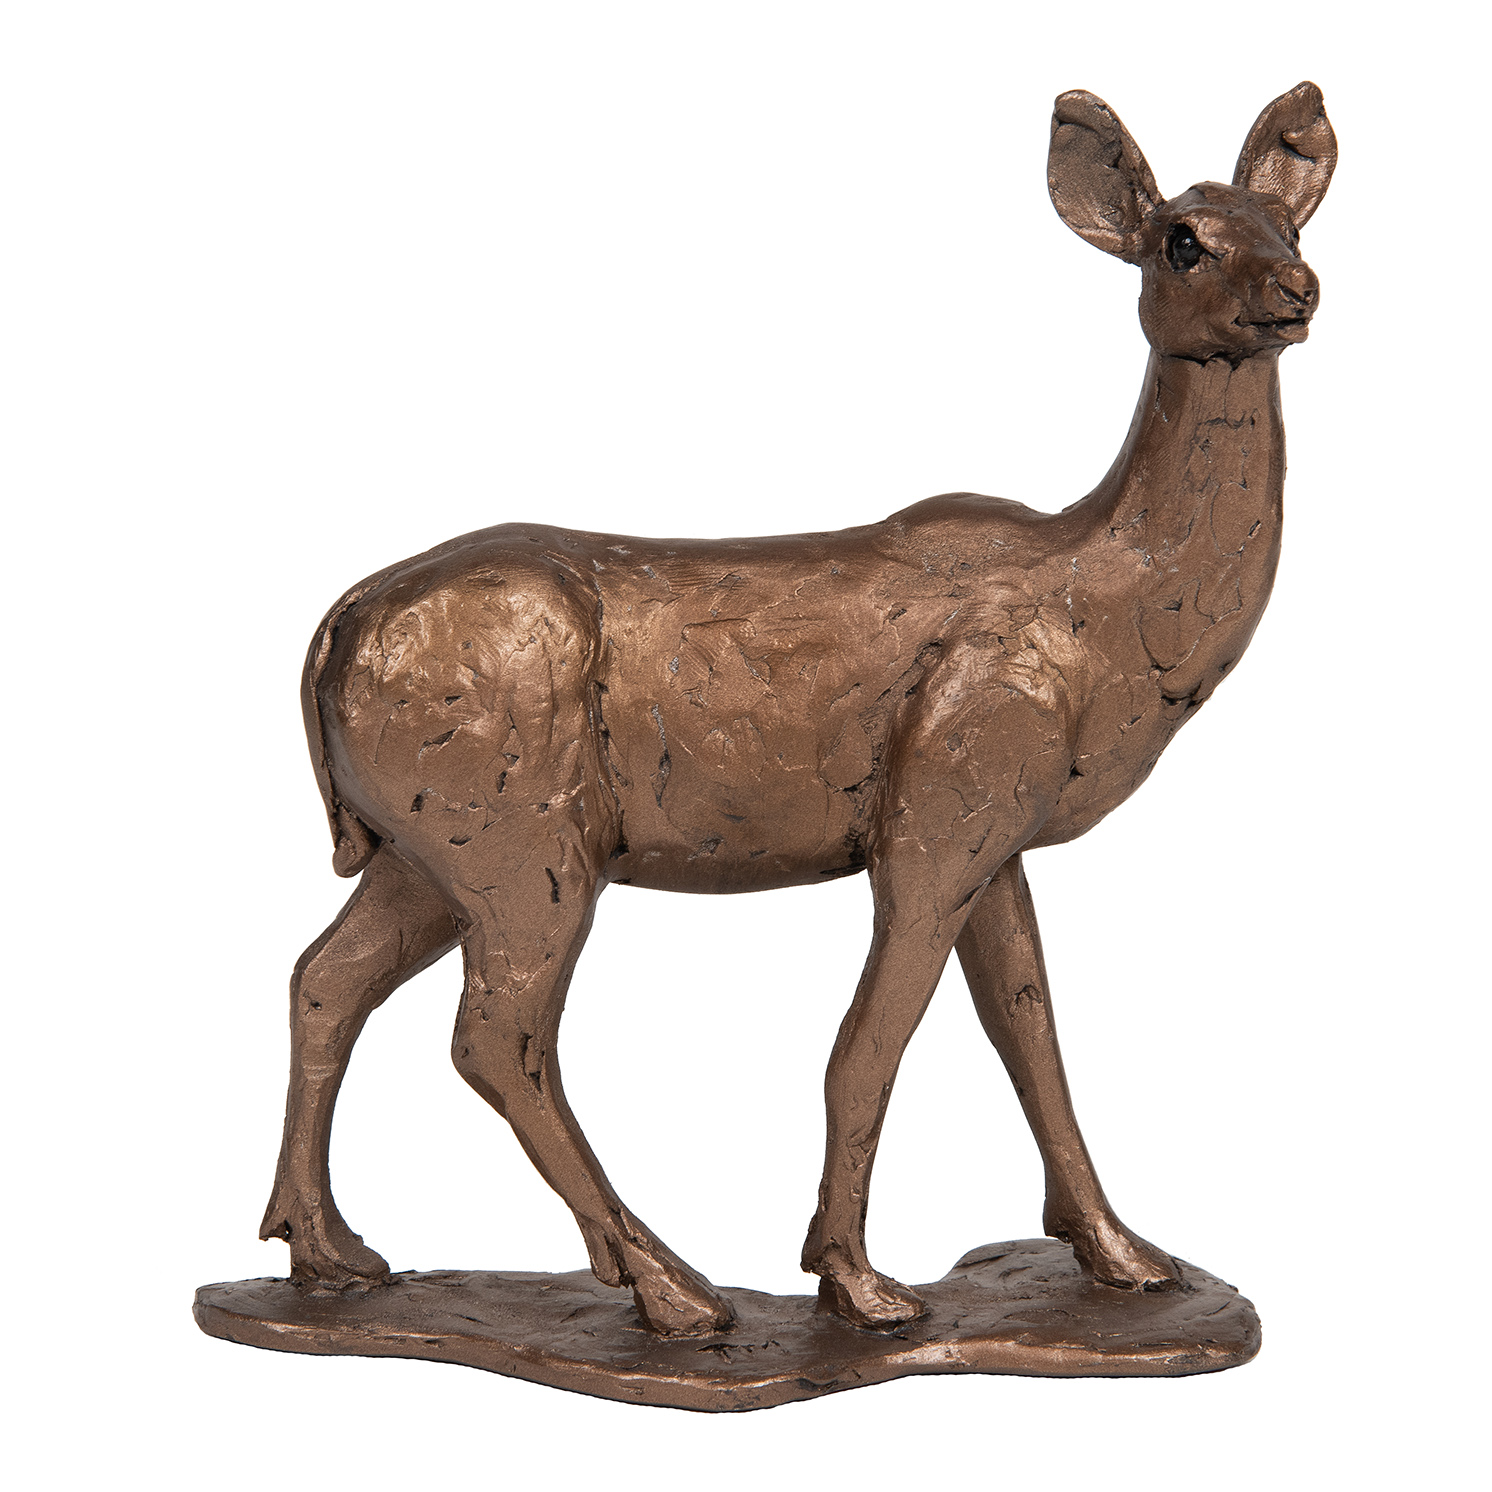 Frith Sculpture – Hind in Bronze Resin by Thomas Meadows in Gift Box